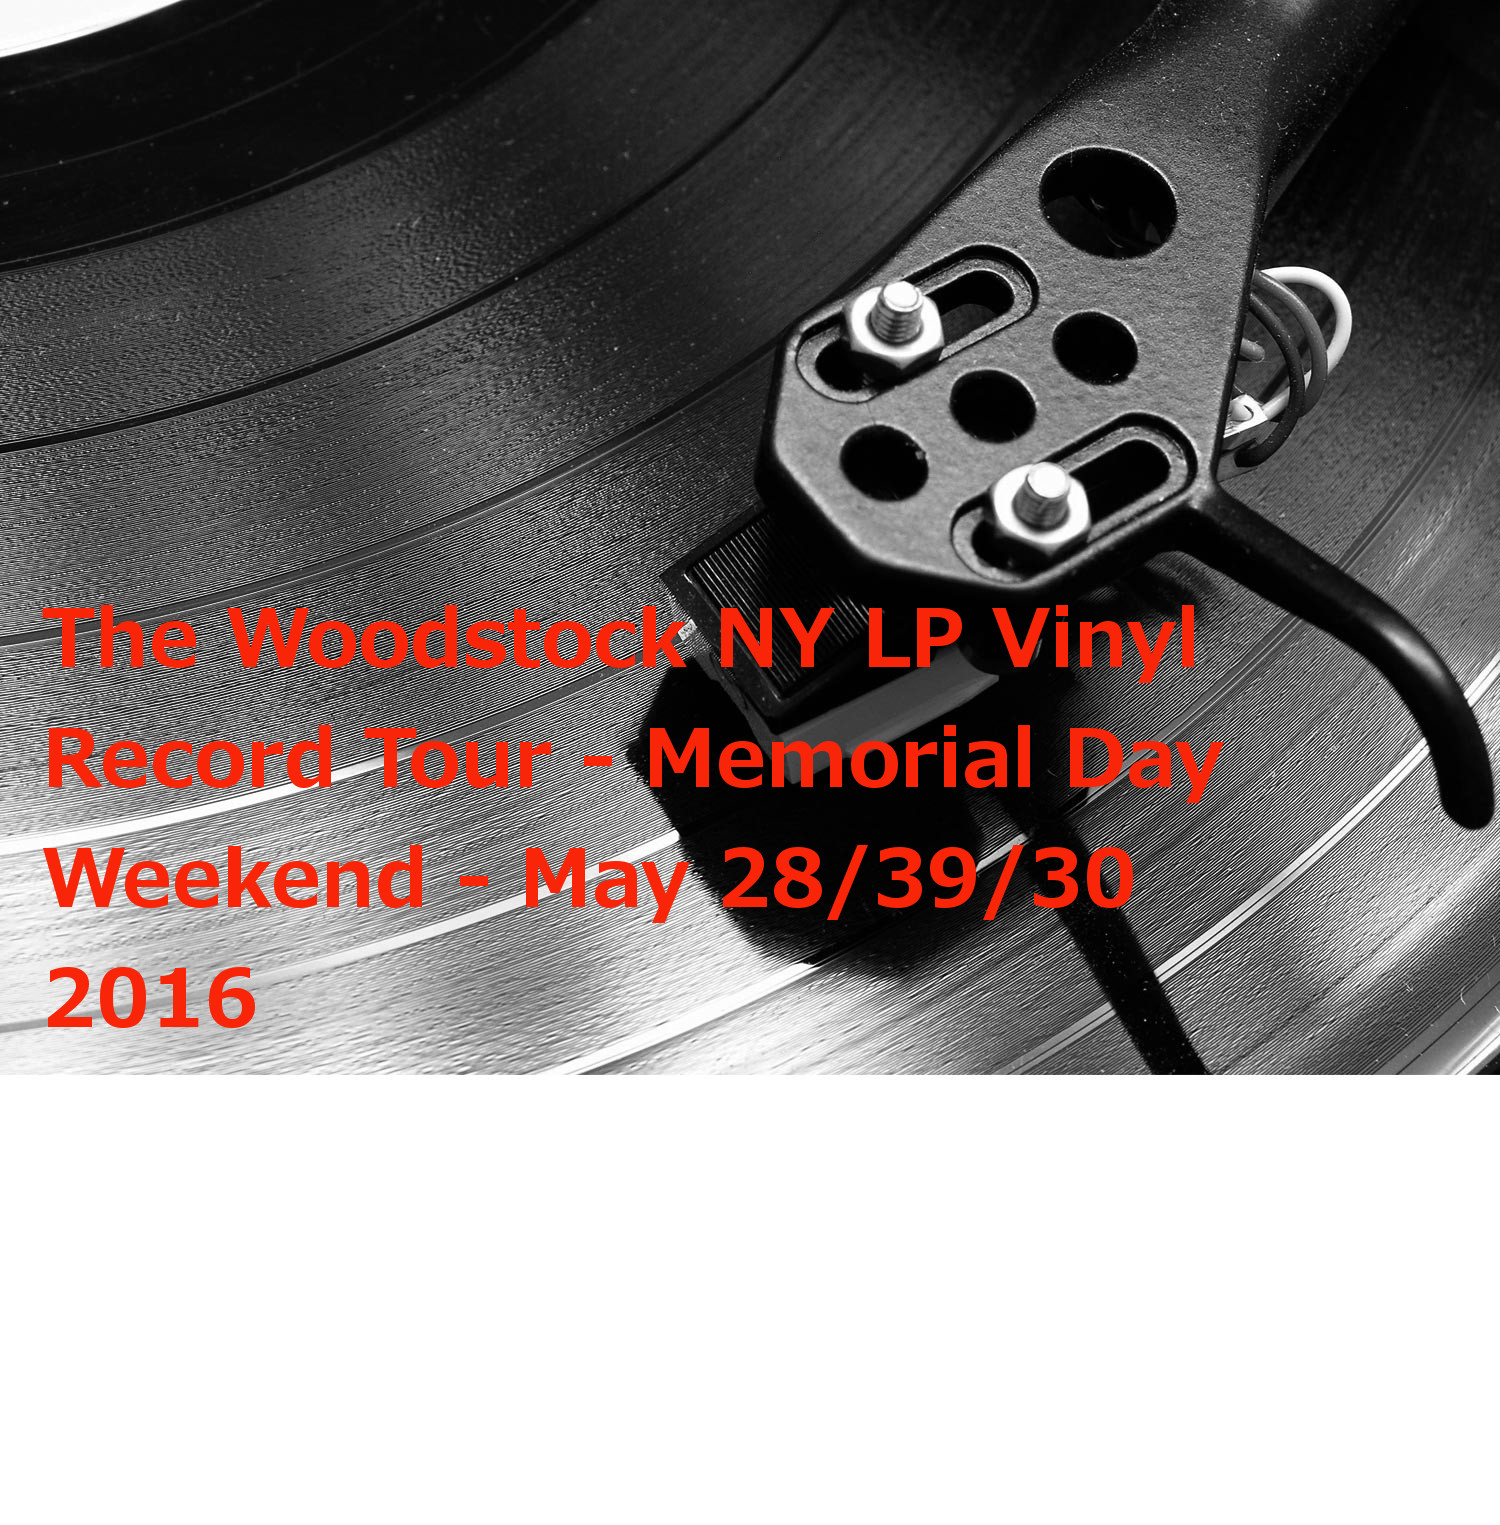 Woodstock Ny Lp Vinyl Record Tour Memorial Day Weekend